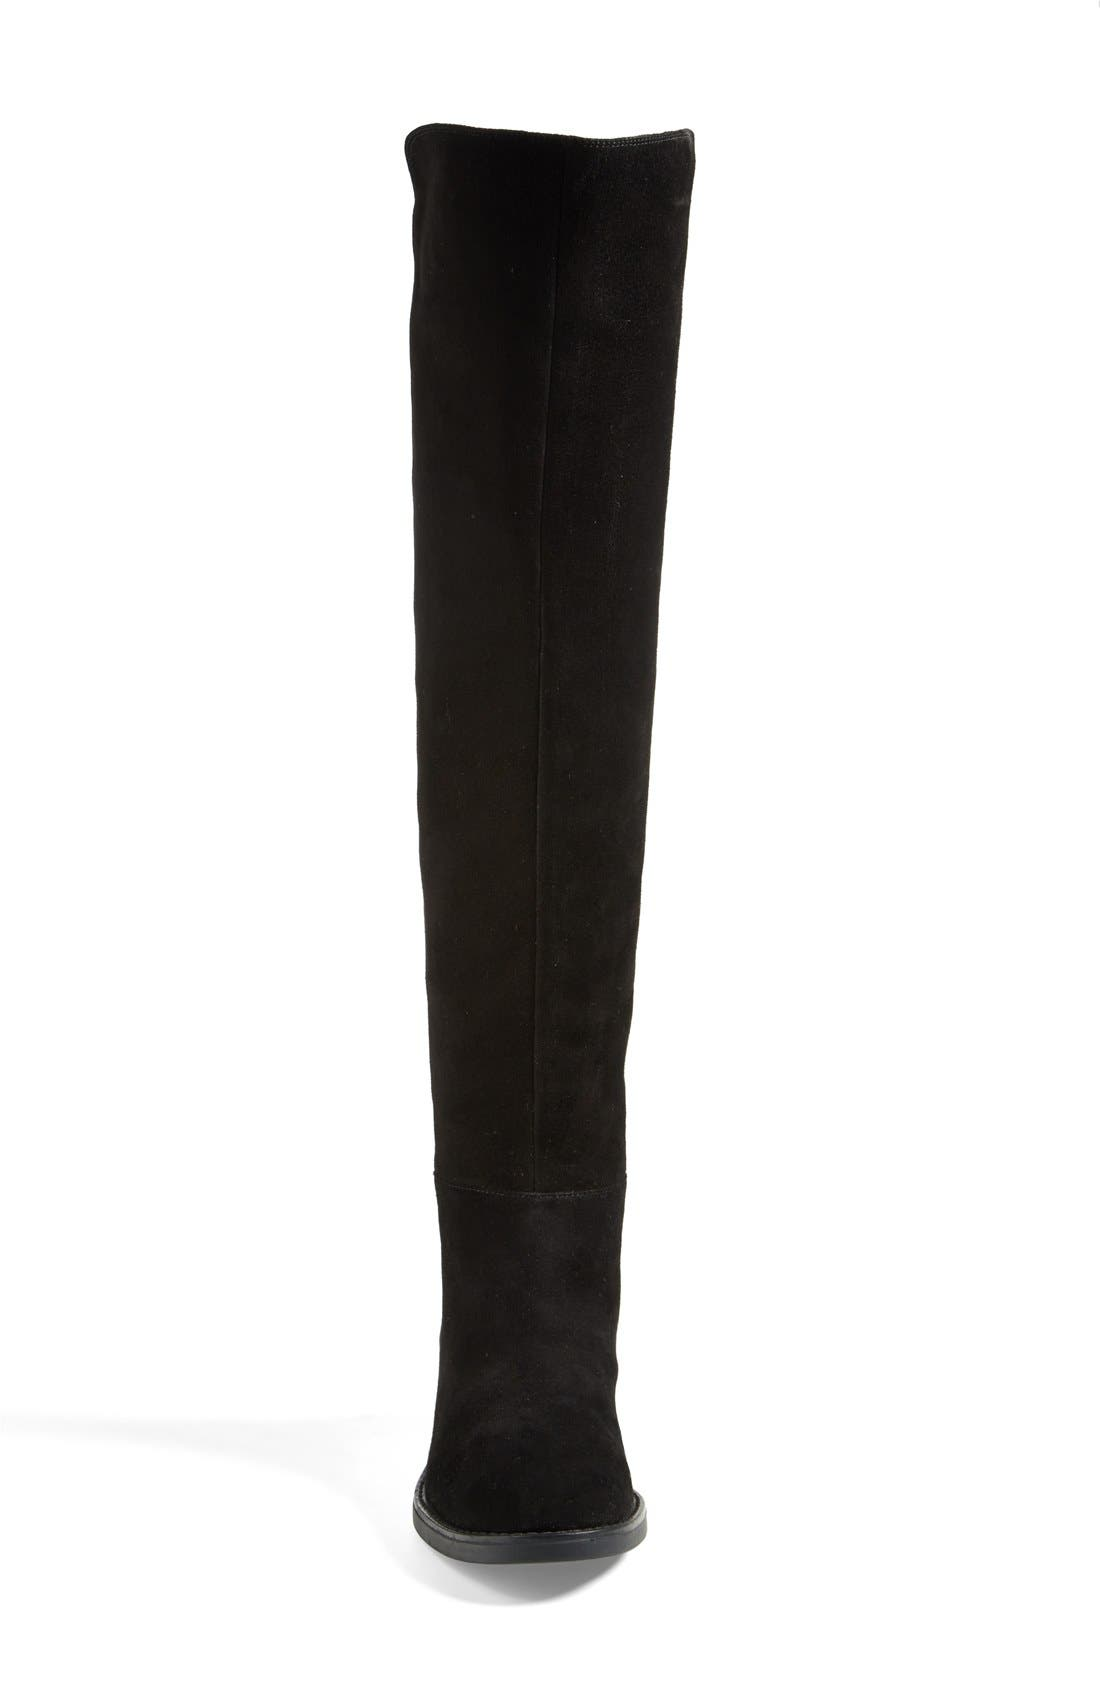 Alternate Image 3  - Blondo 'Eden' Over the Knee Waterproof Boot (Women)